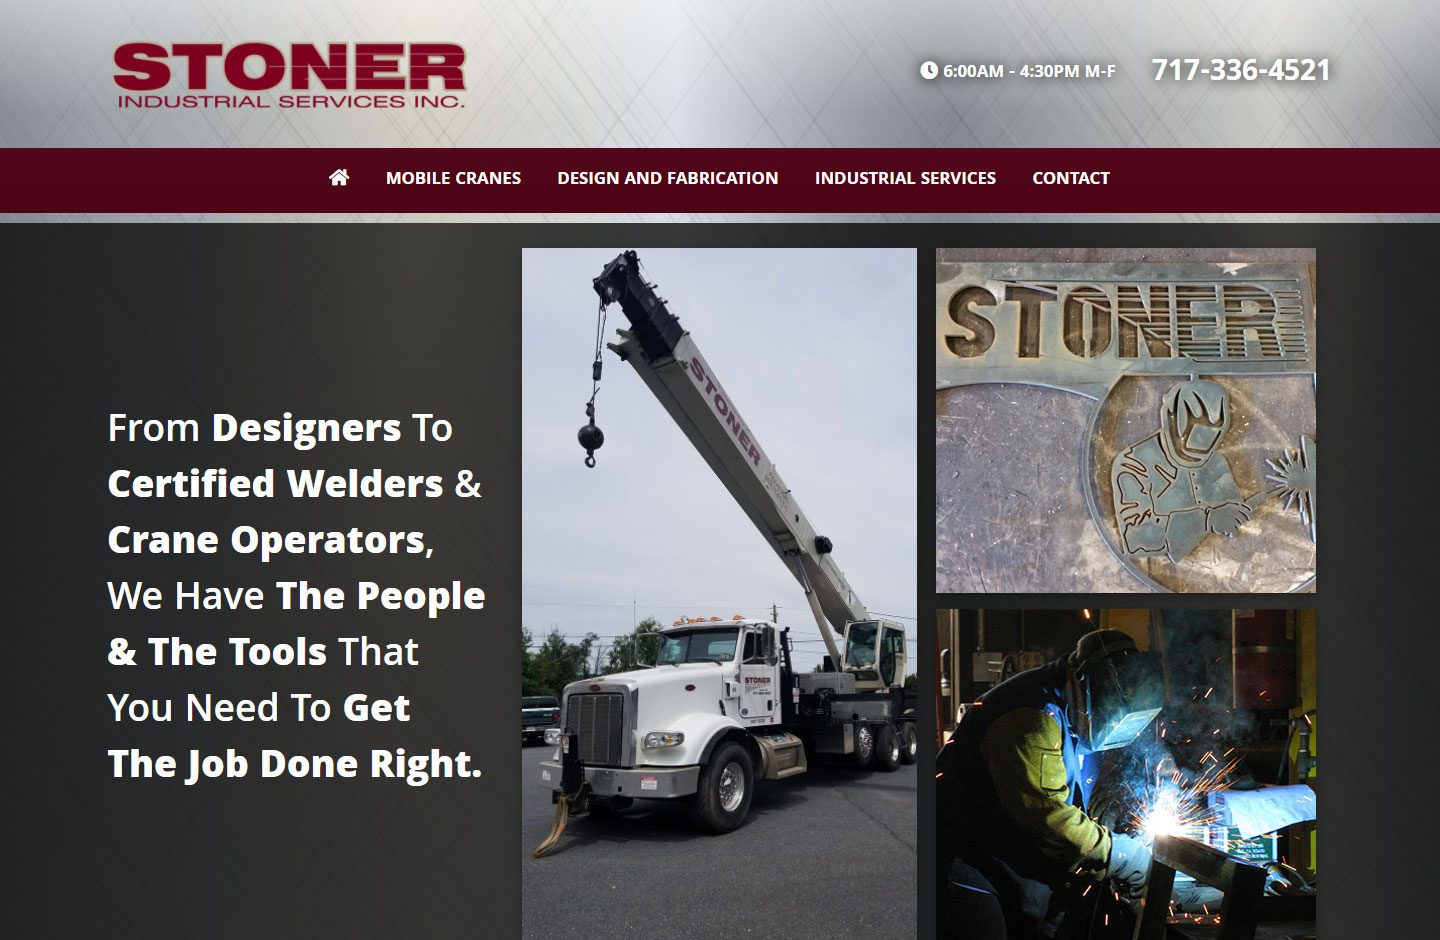 Stoner Industrial Services